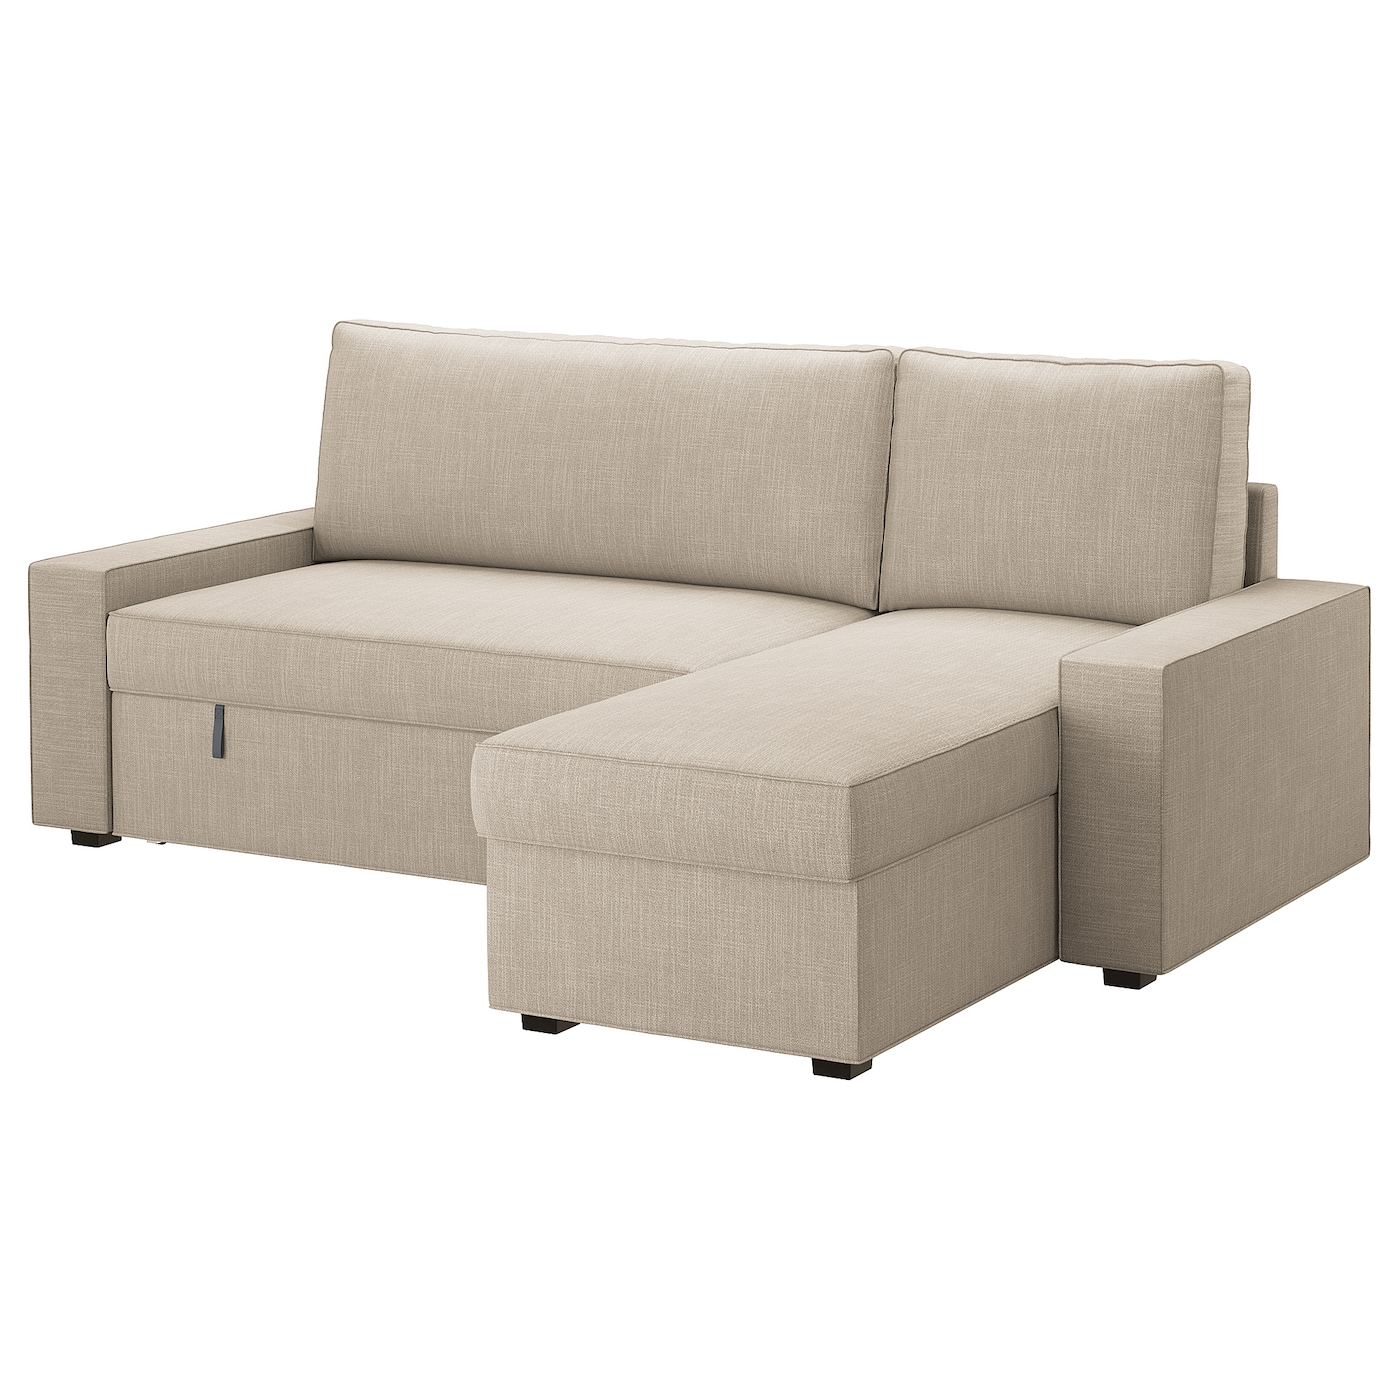 Vilasund sofa bed with chaise longue hillared beige ikea for Chaise longue furniture